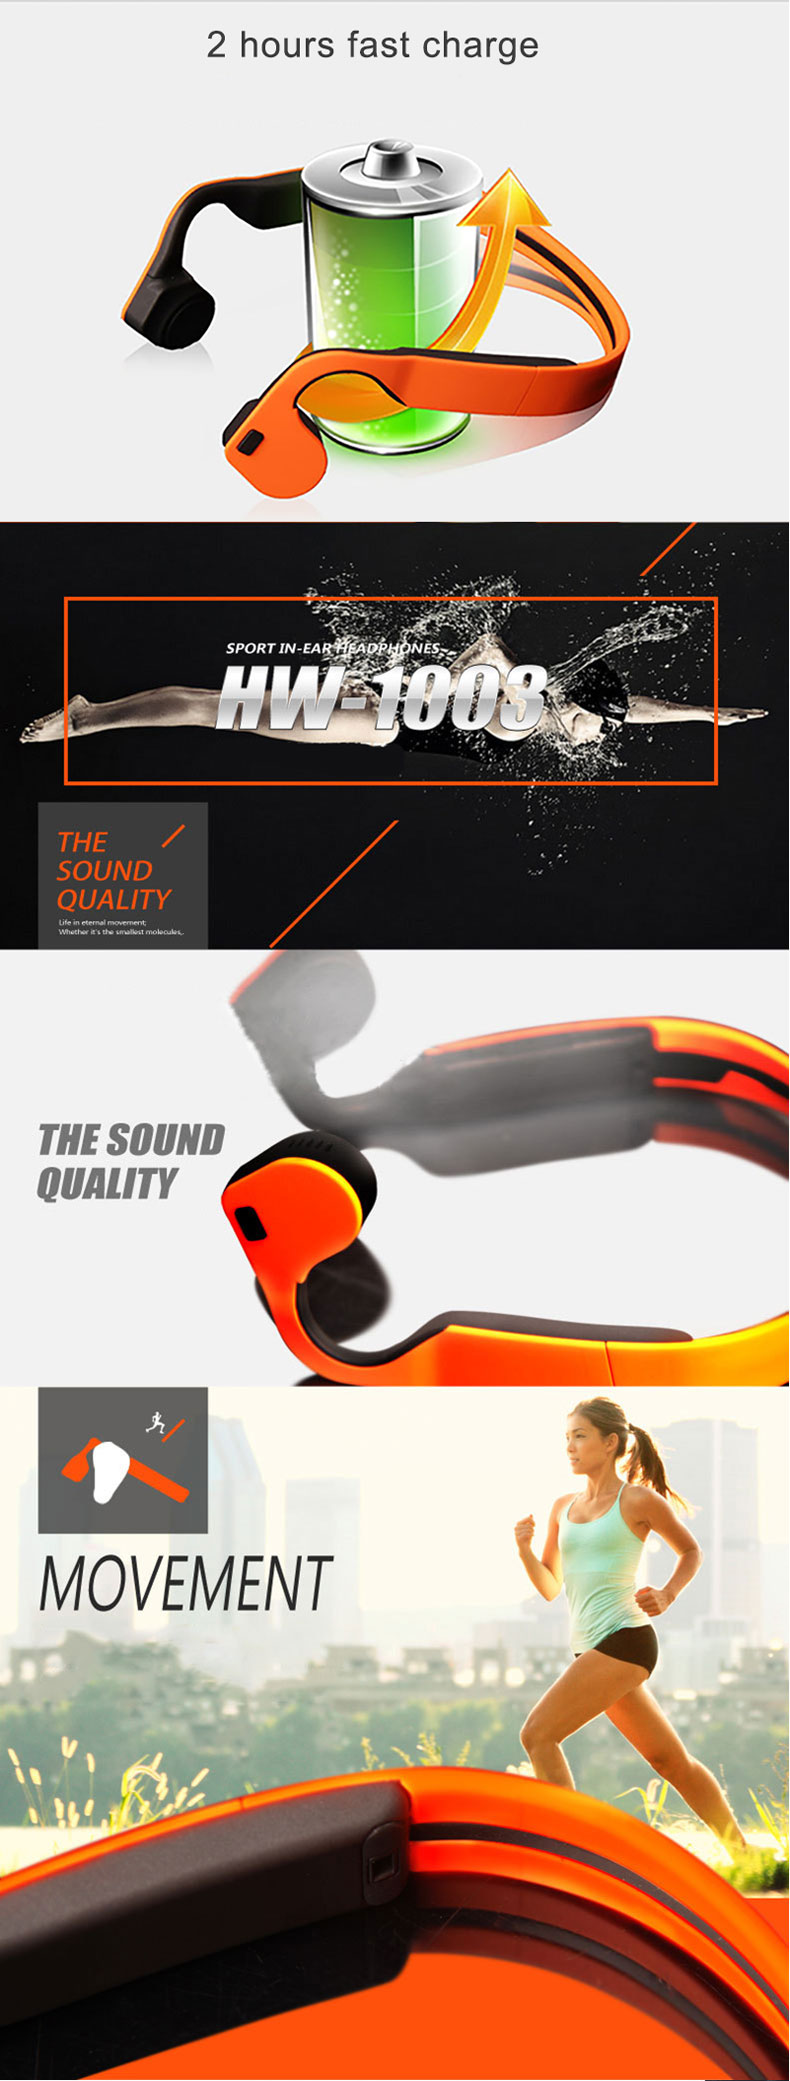 HW-1003 Bone Conduction Wireless bluetooth Headphones Life Waterproof Sport NFC Hands-free Earphone